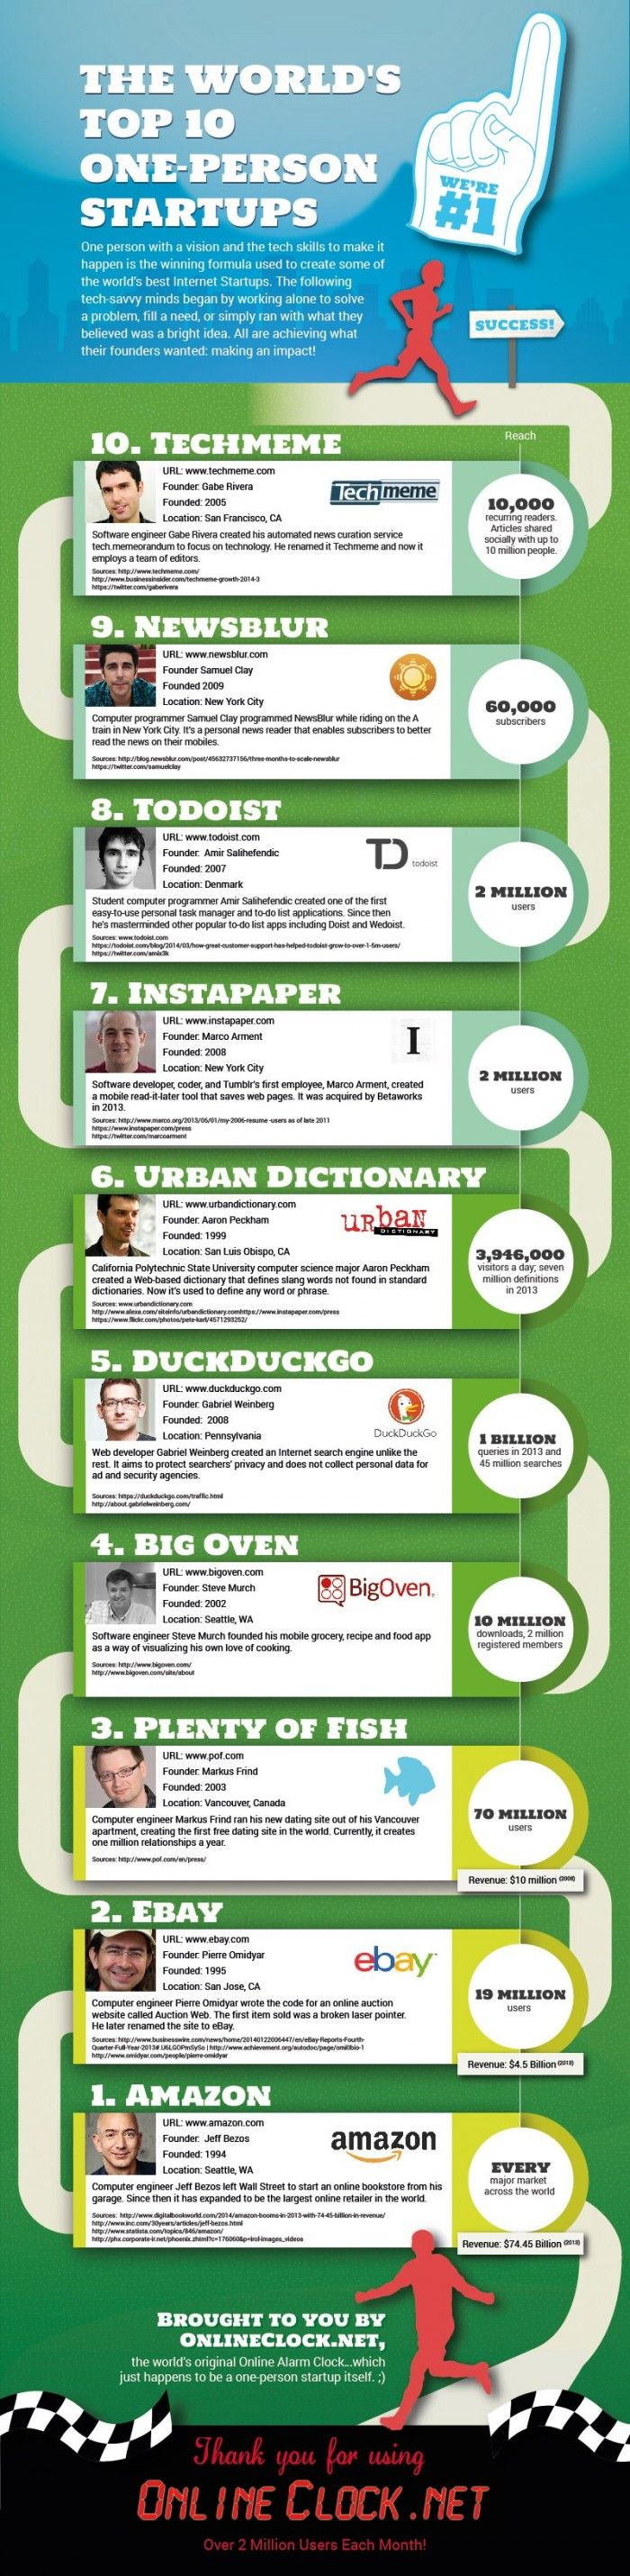 Top 10 One Person Startups